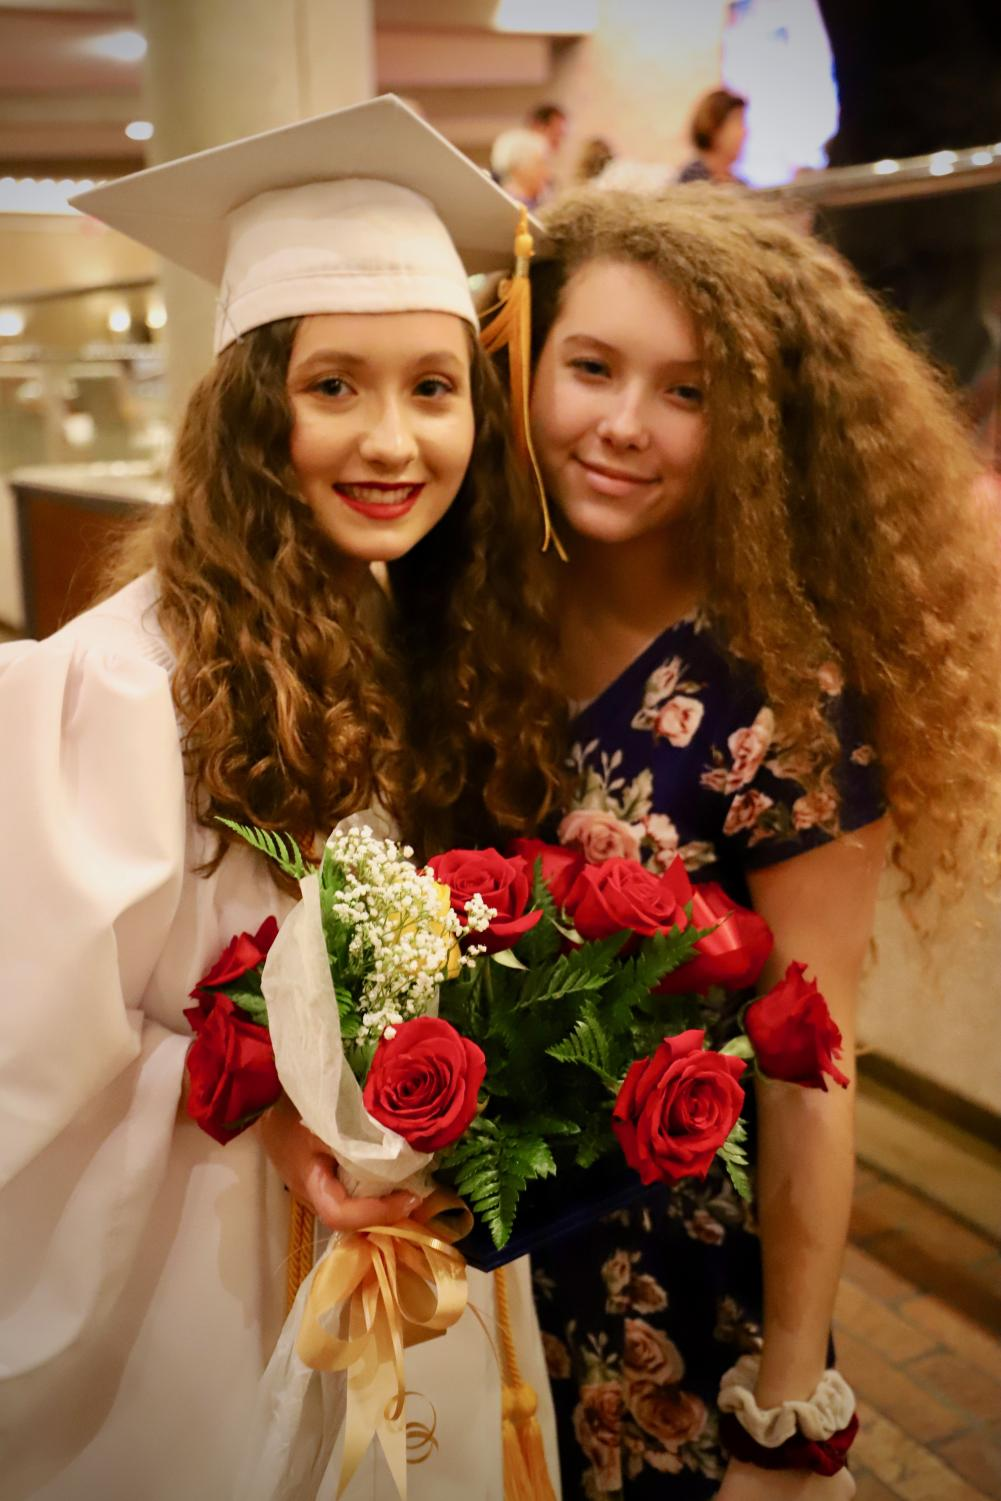 Bella+Ferrie+%28%2721%29+witnessed+her+now+graduated+sister+receiver+her+diploma+and+roses.+